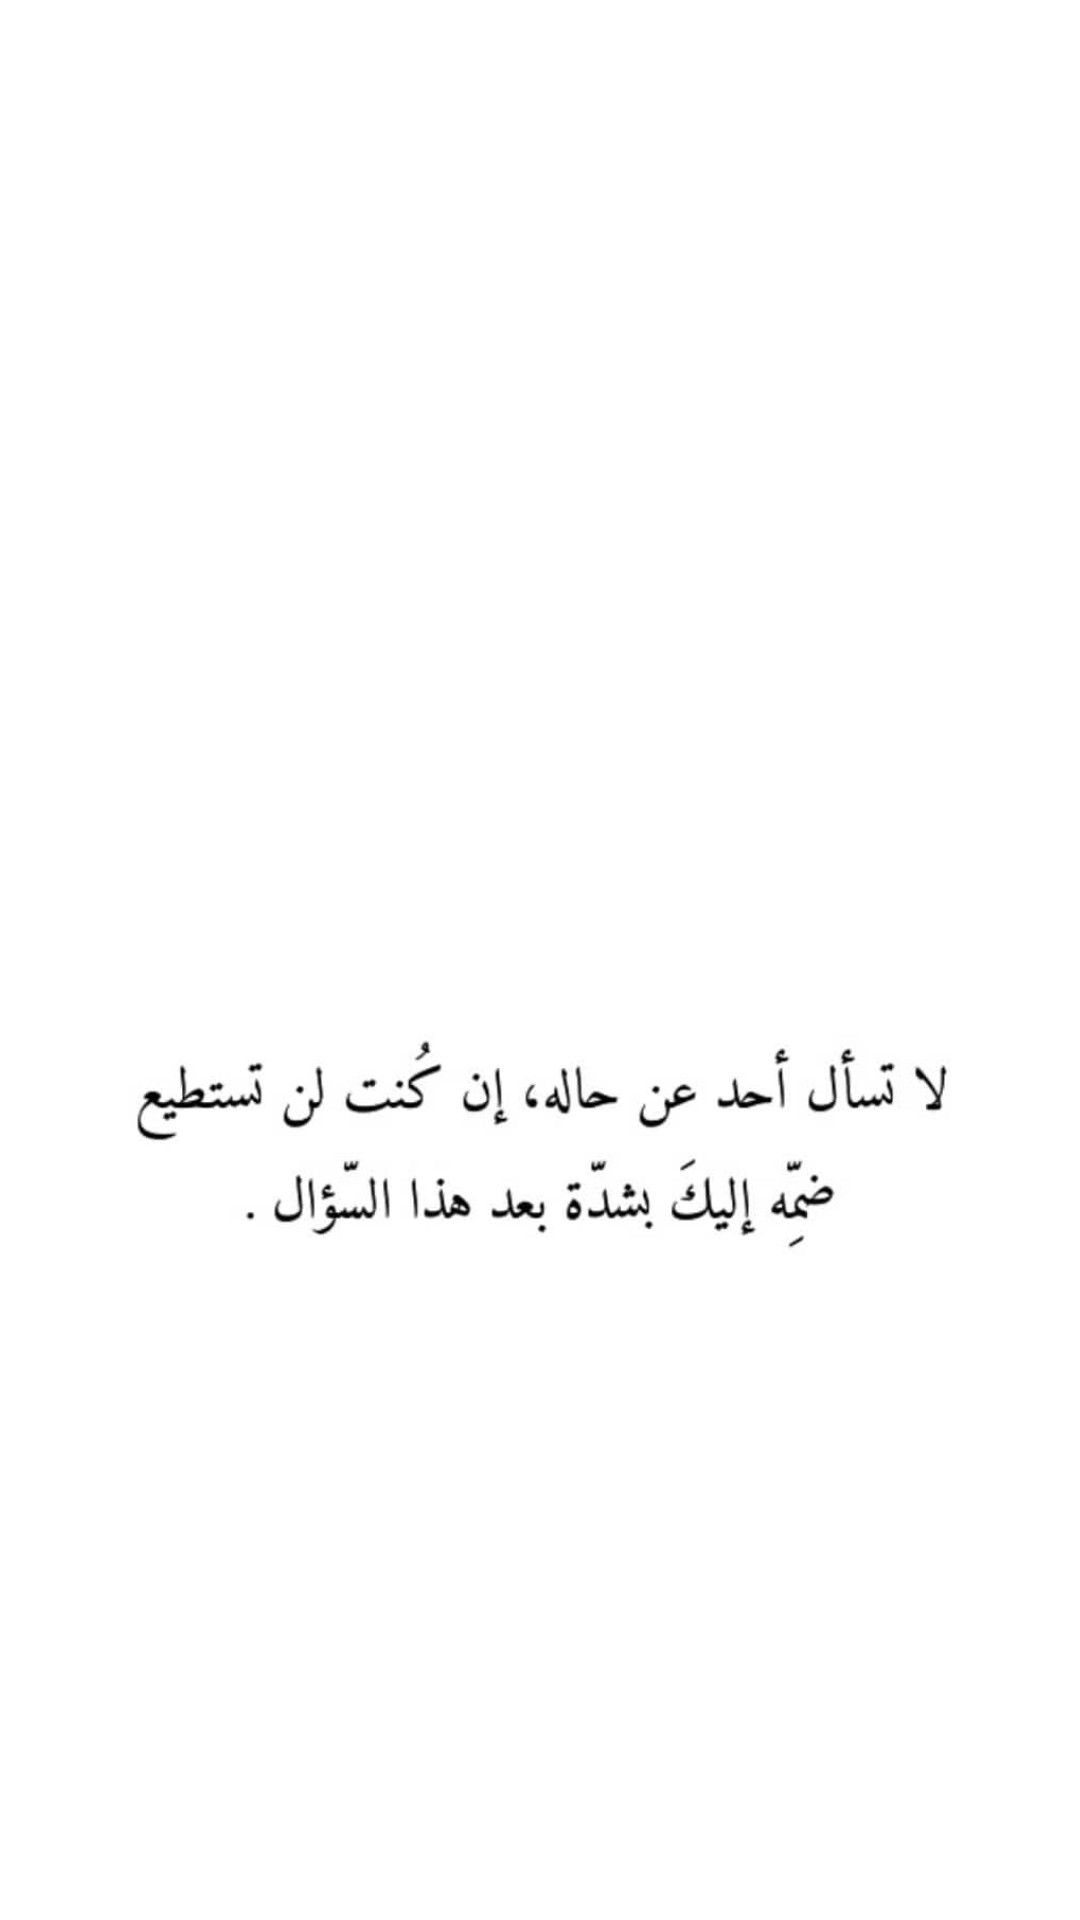 Pin By Maysoon On مما أعجبنے Words Quotes Talking Quotes Funny Arabic Quotes